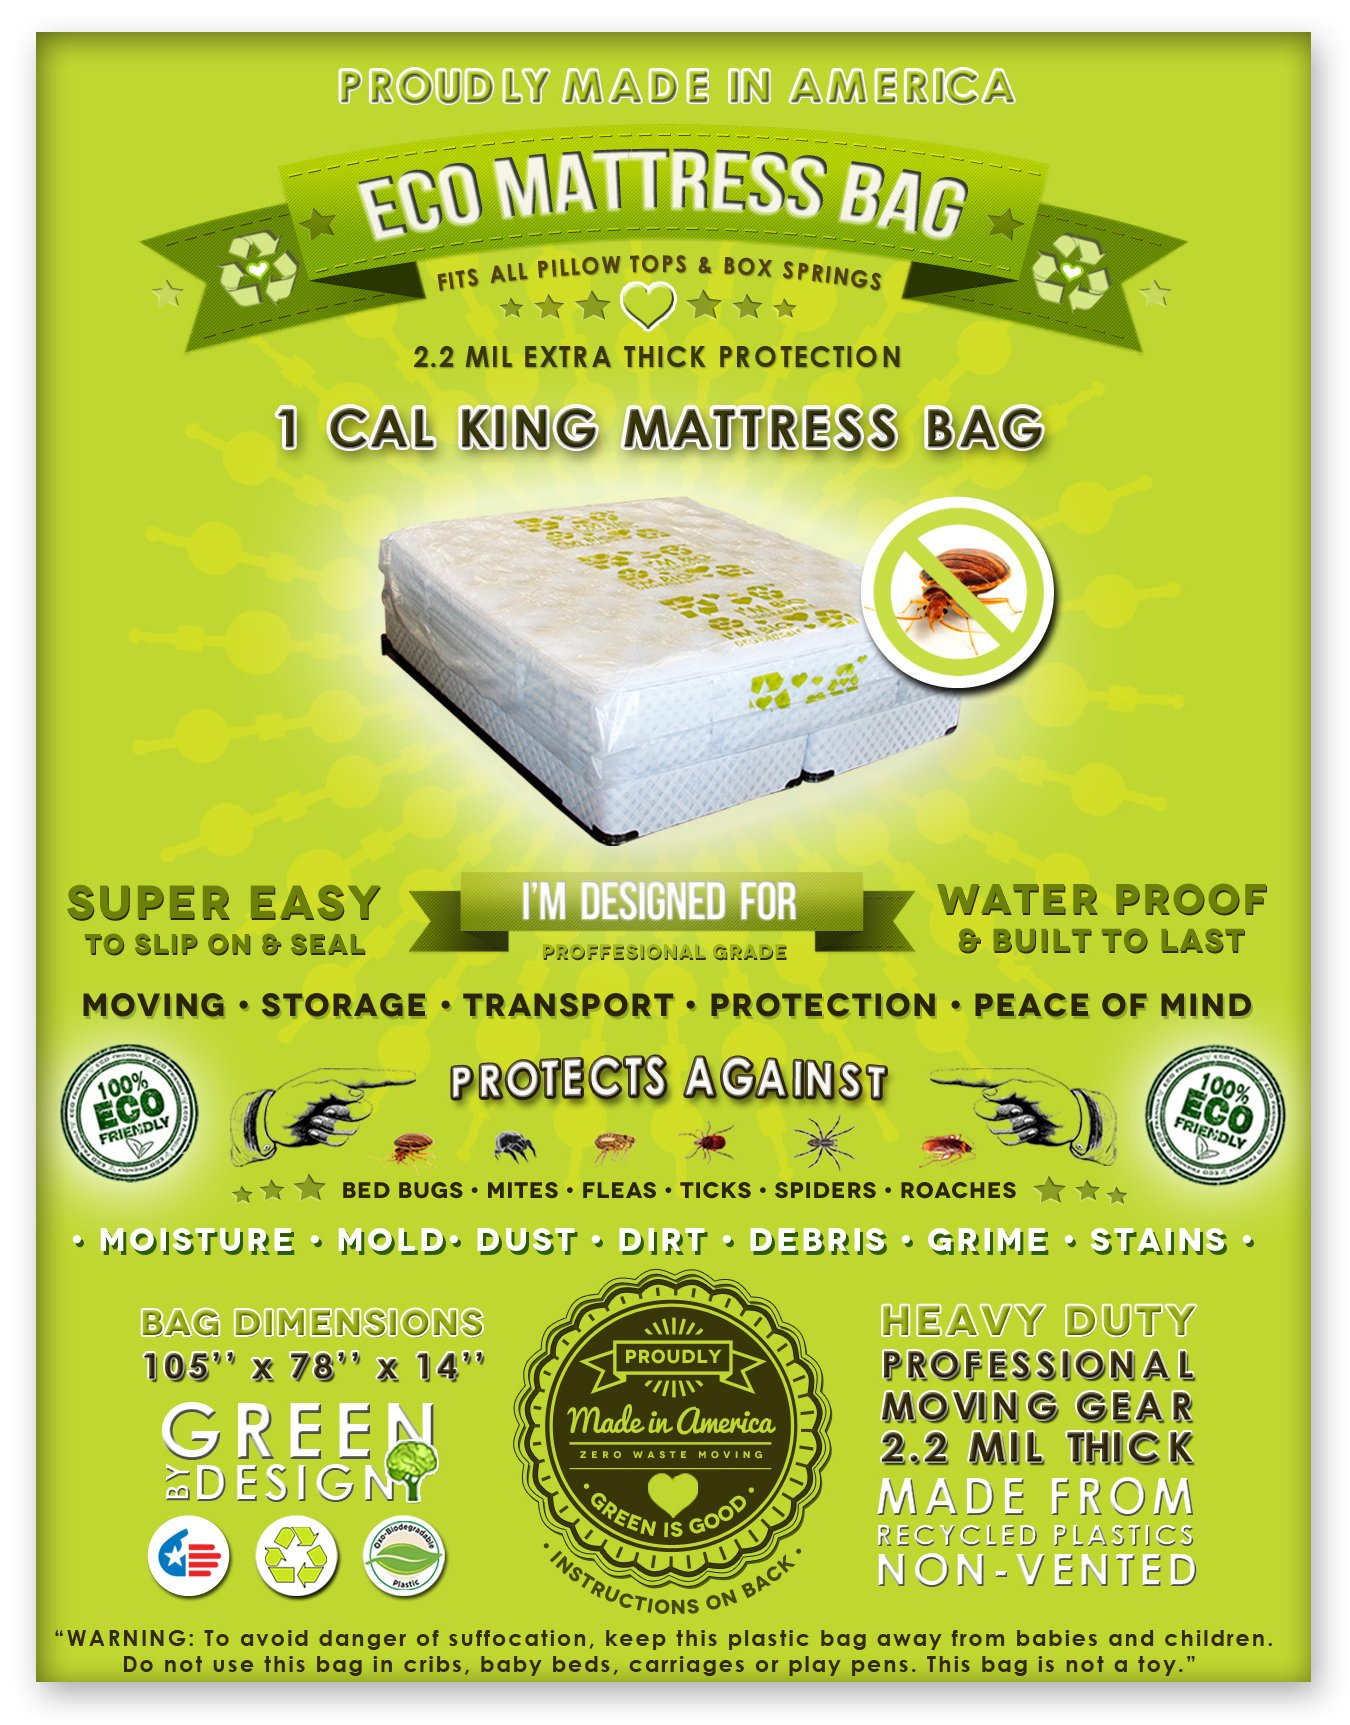 1 Cal King, King or Queen Mattress Protective Cover for Incontinence, Bed Bugs, Stains, Dirt, Debris. Ideal for Protecting Mattress. Proudly Made in America.